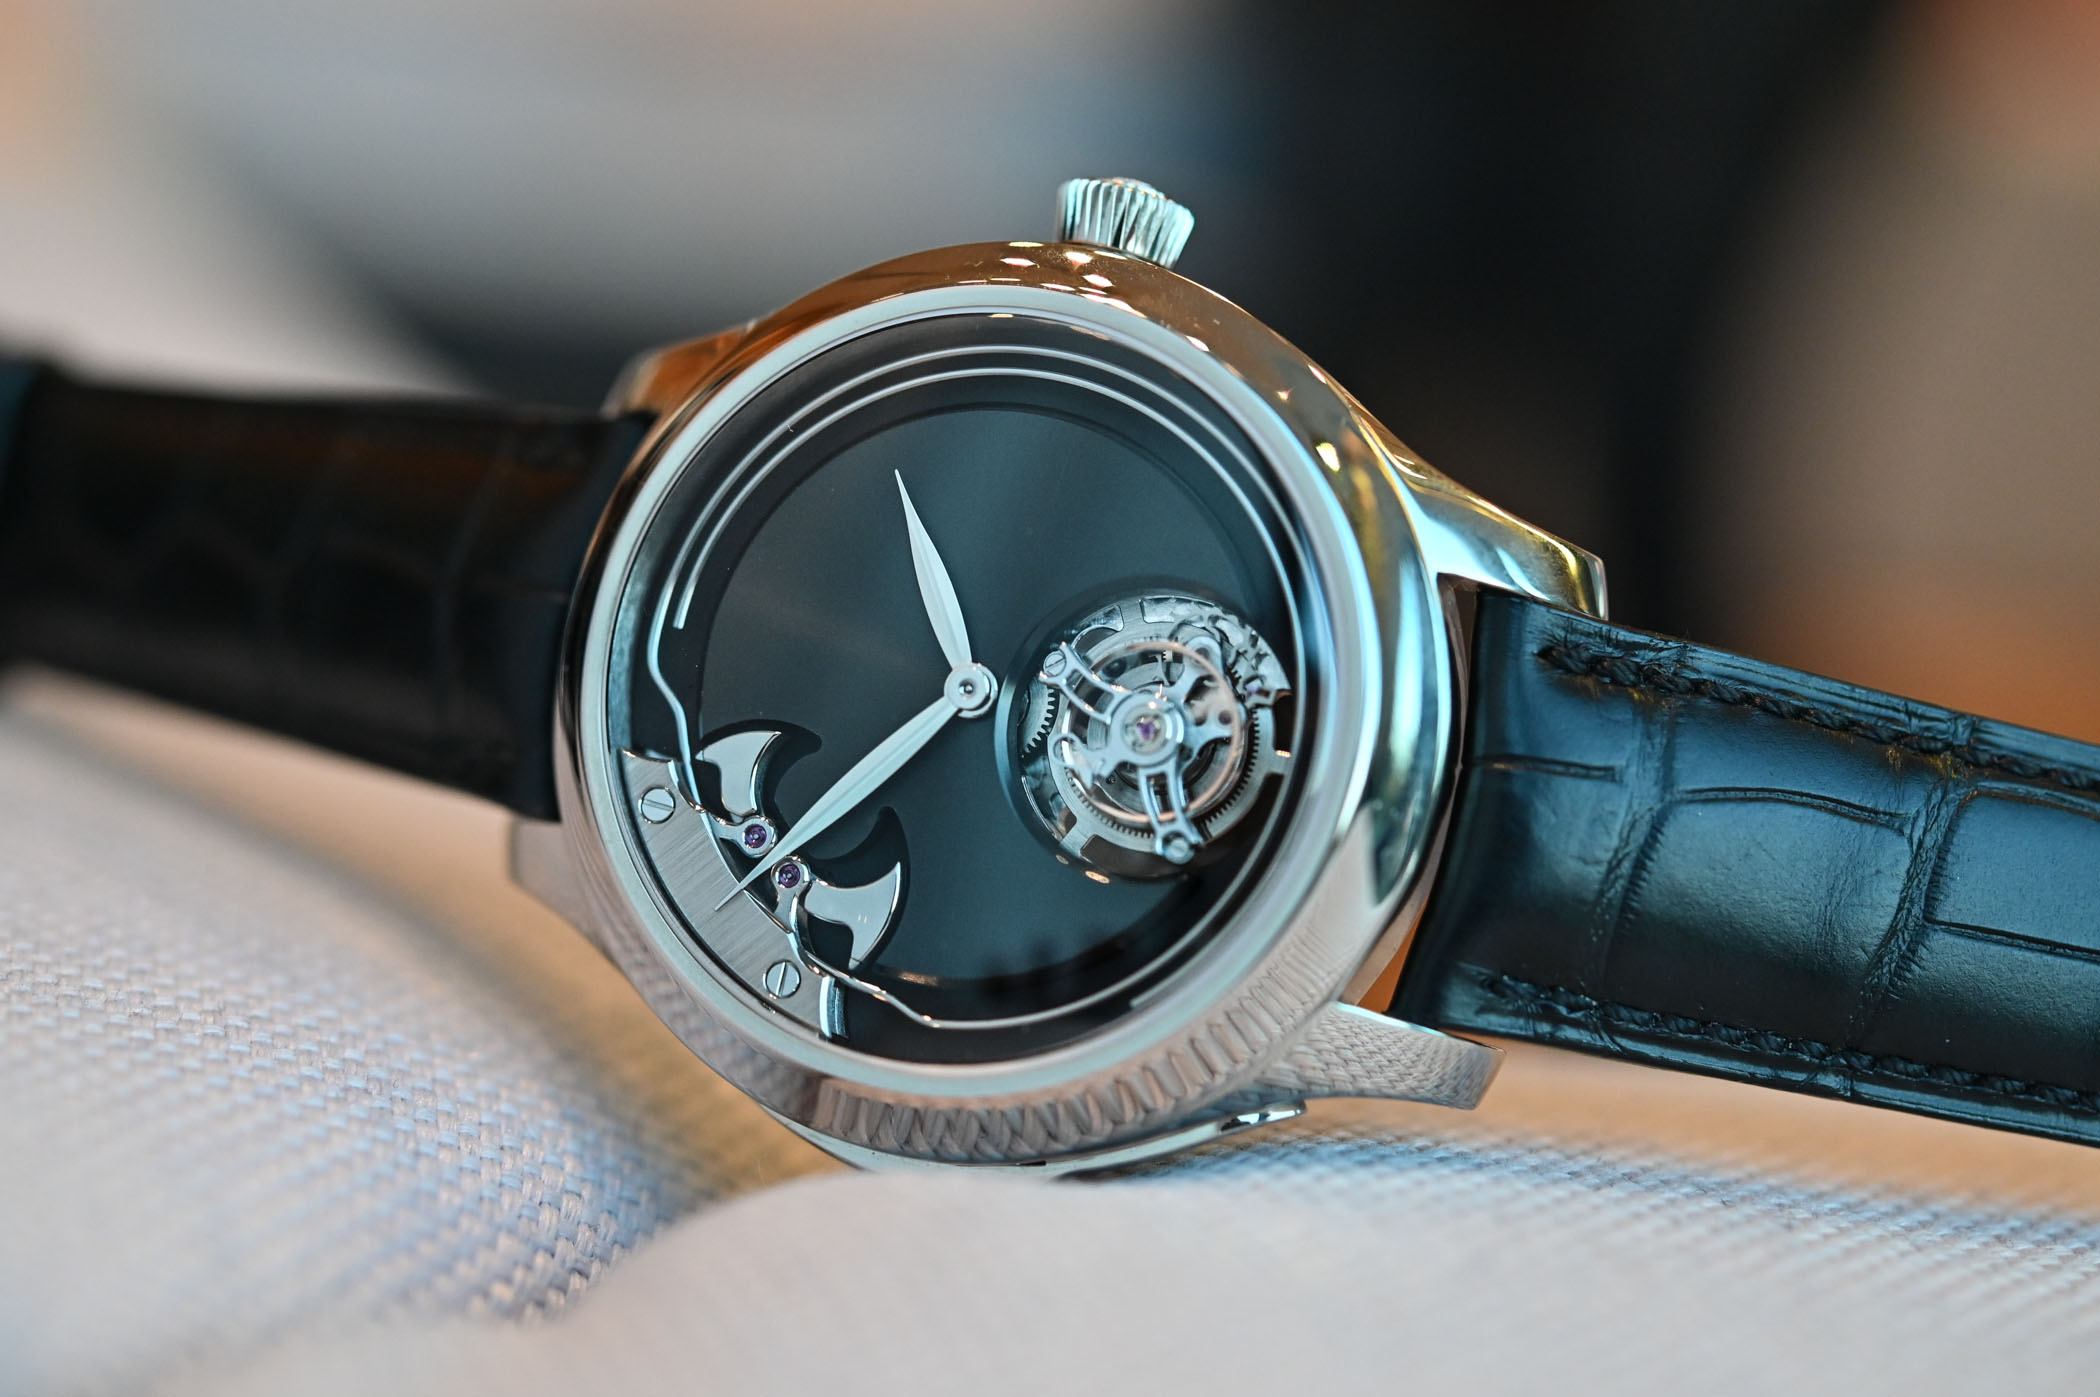 H Moser Concept Minute Repeater Tourbillon